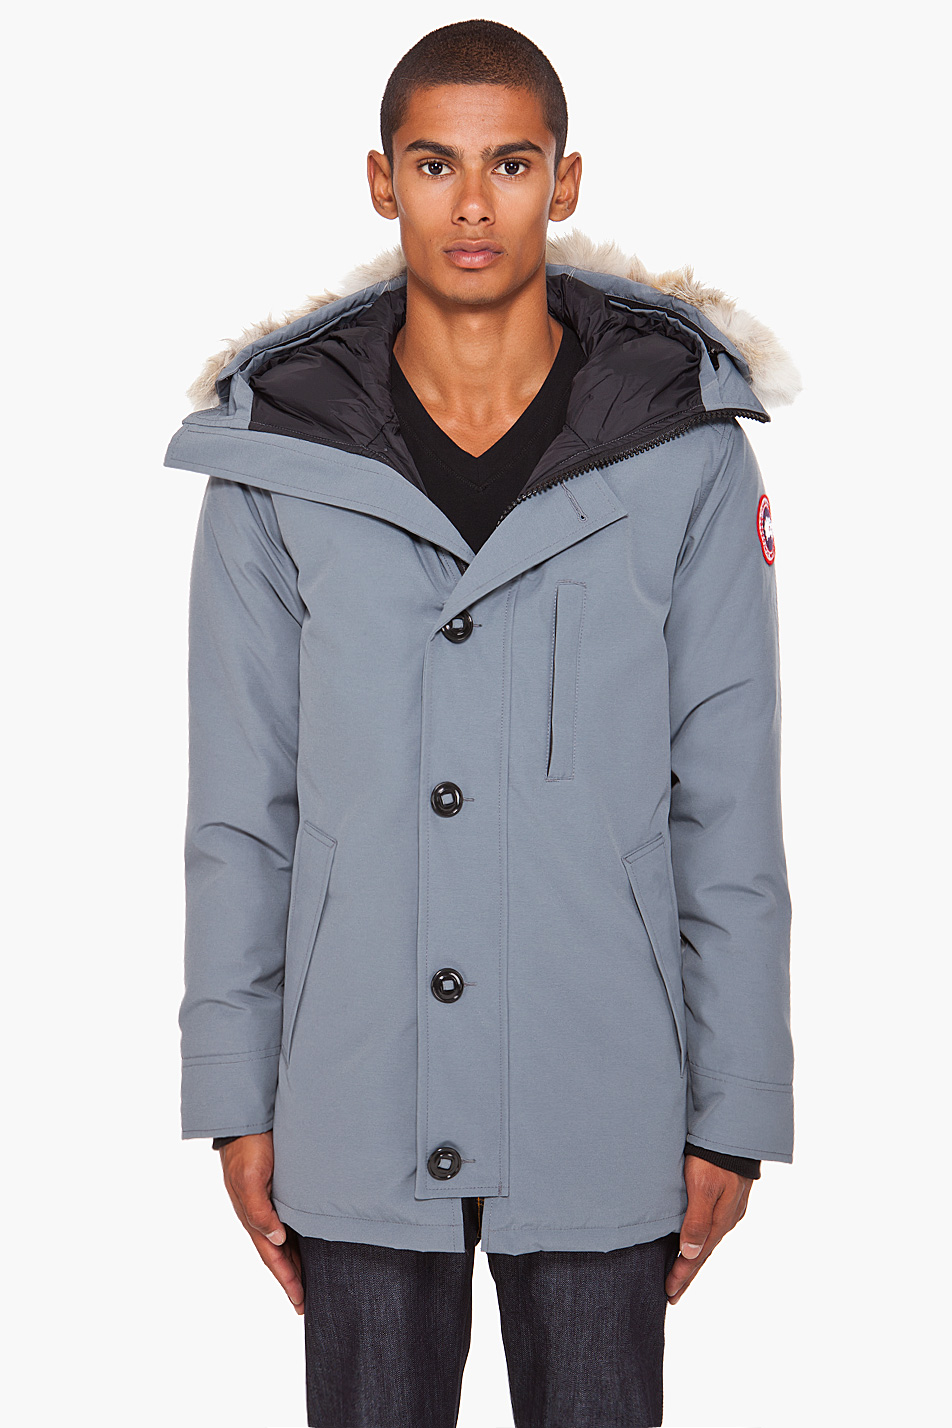 Lyst - Canada Goose Chateau Parka in Gray for Men 02d51d8b171b